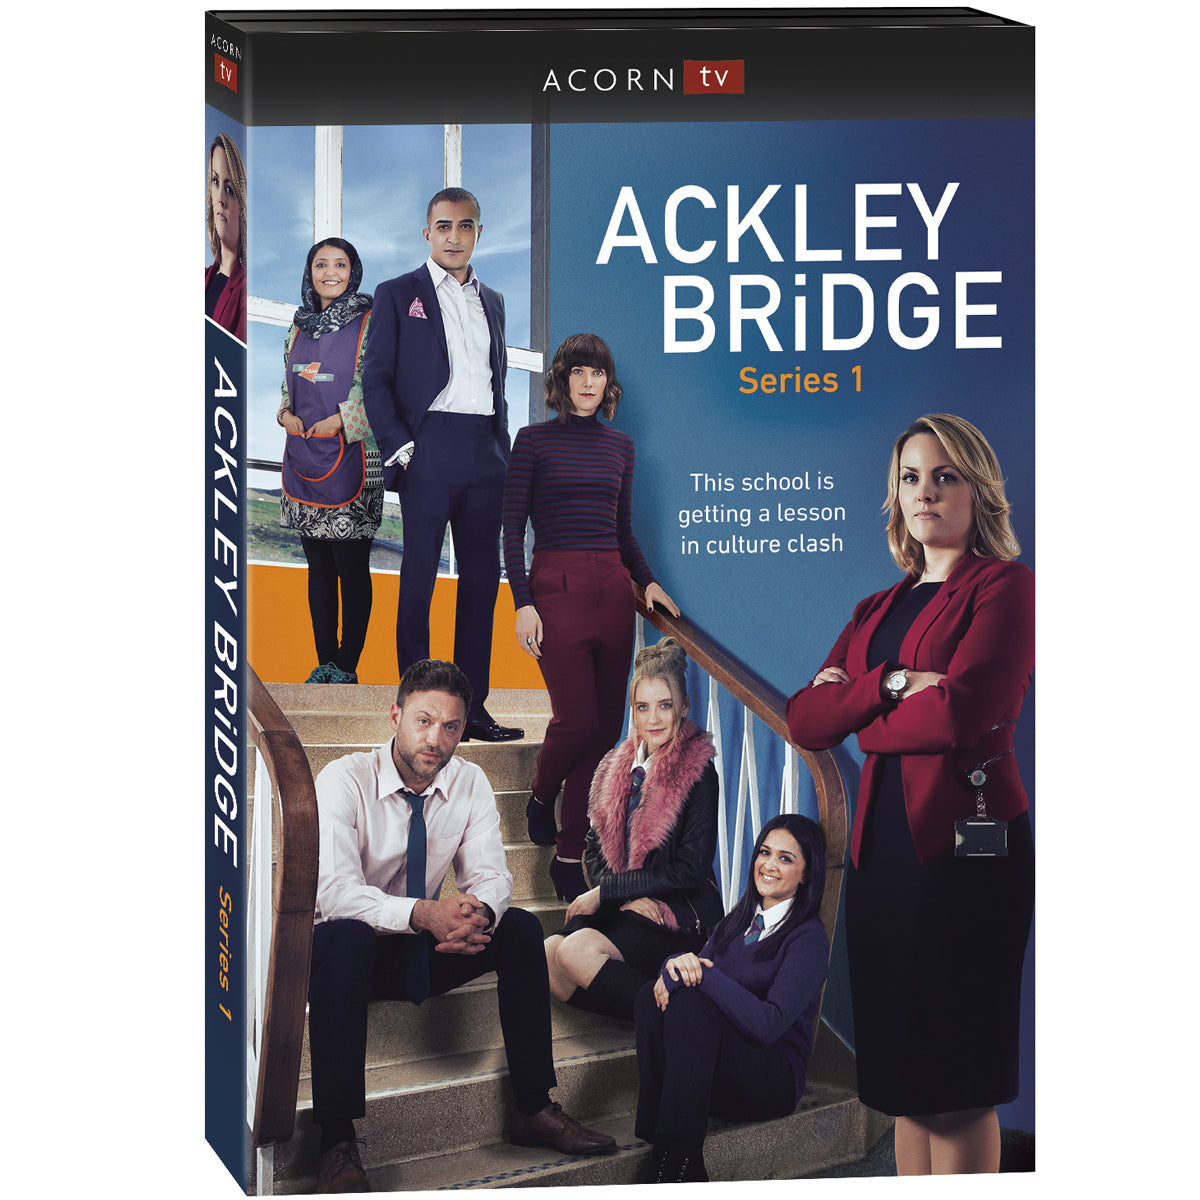 Ackley Bridge: Series 1